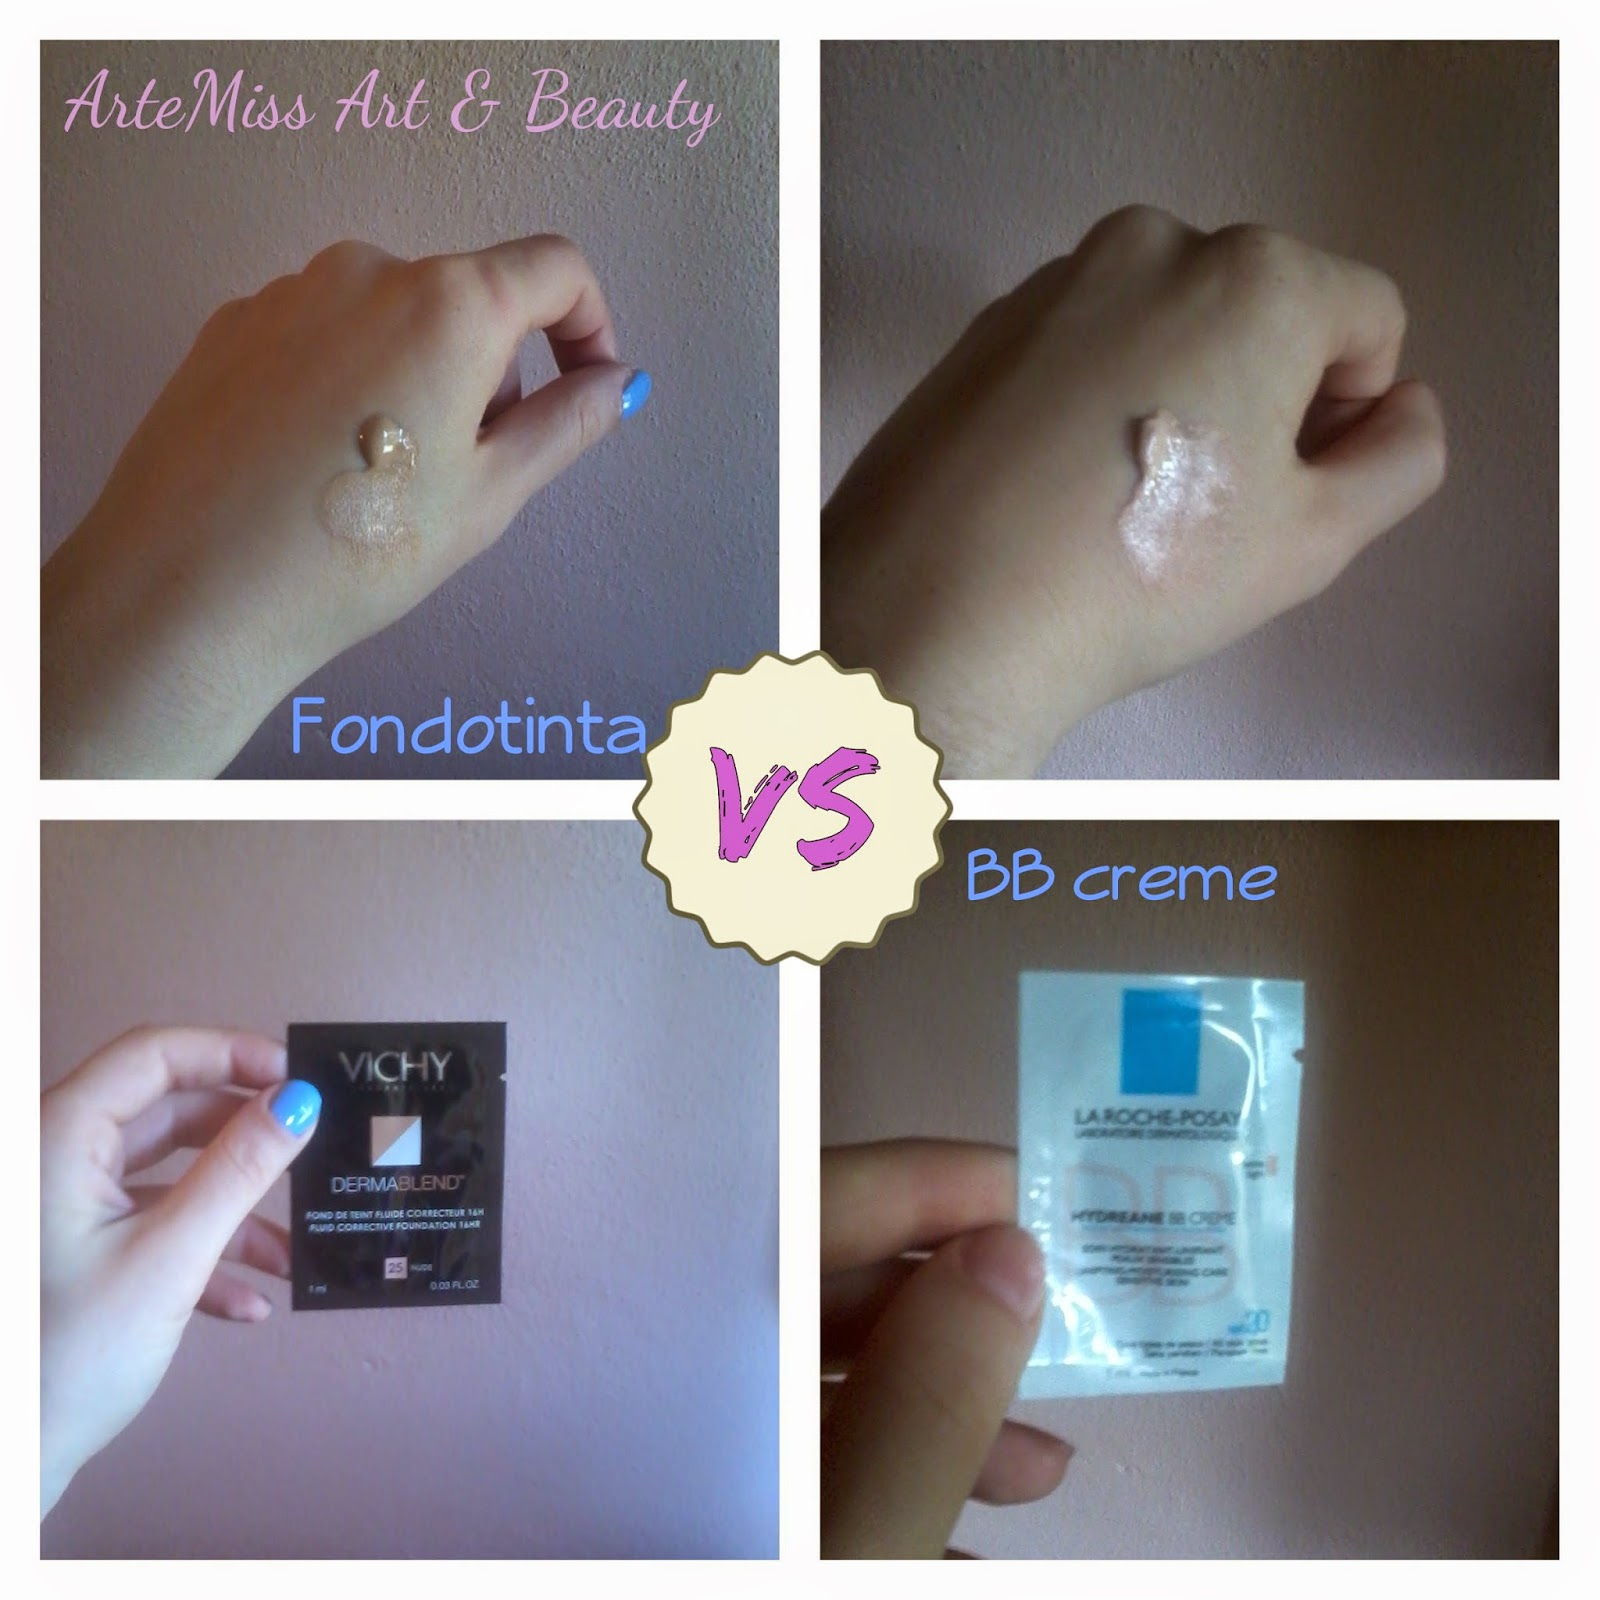 Fondotinta vs BB cream